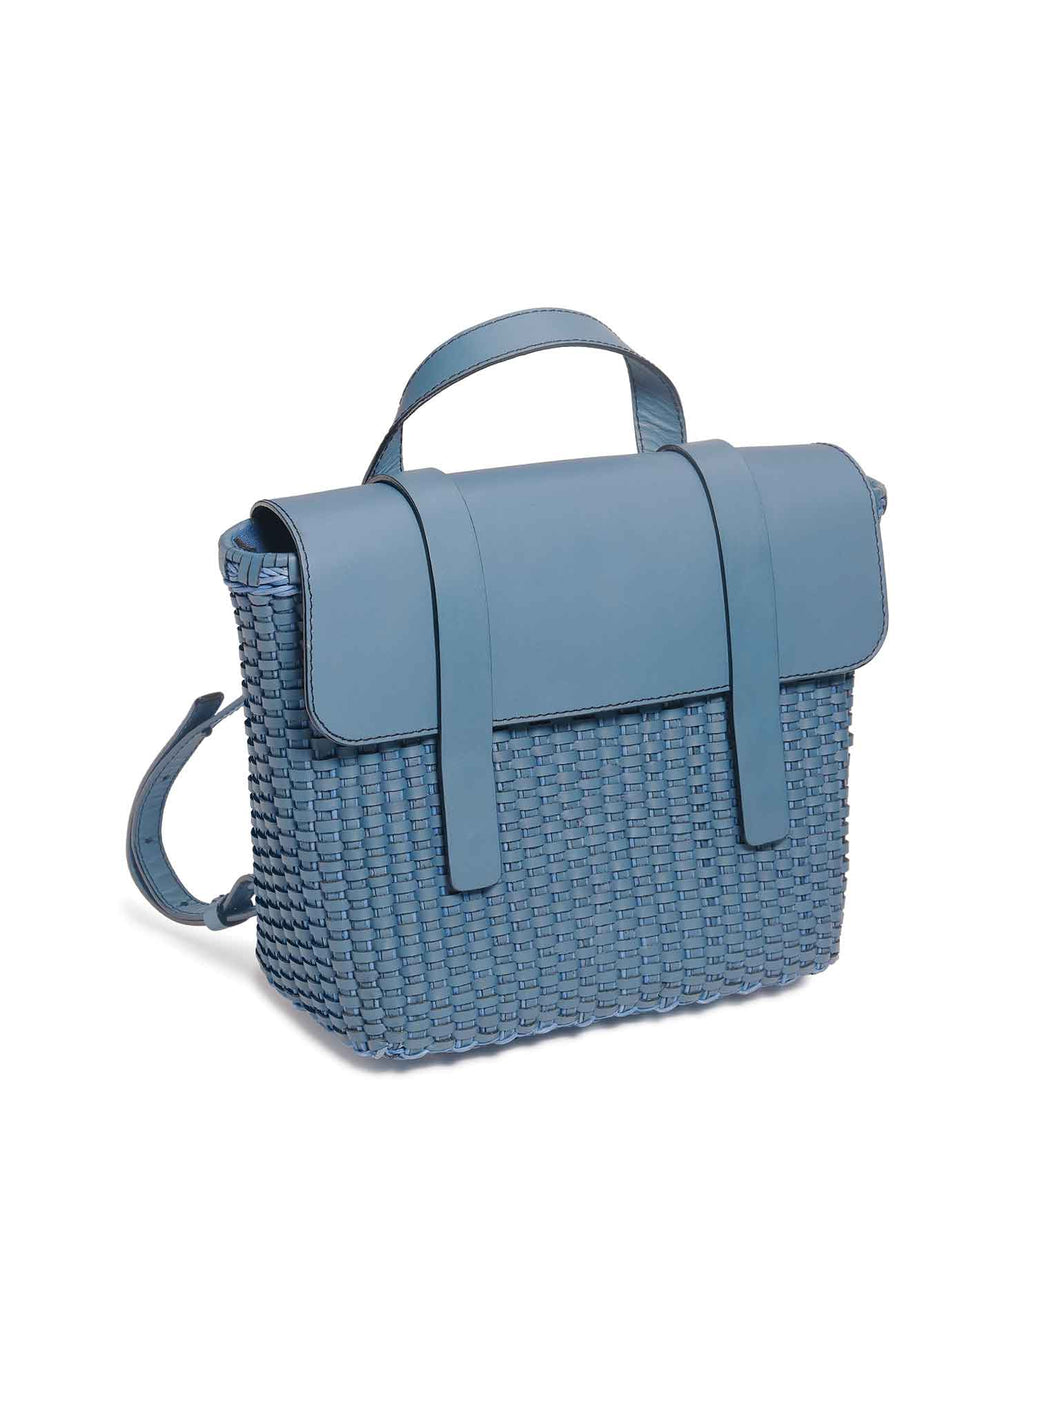 Blue Woven Leather Freehand Bag